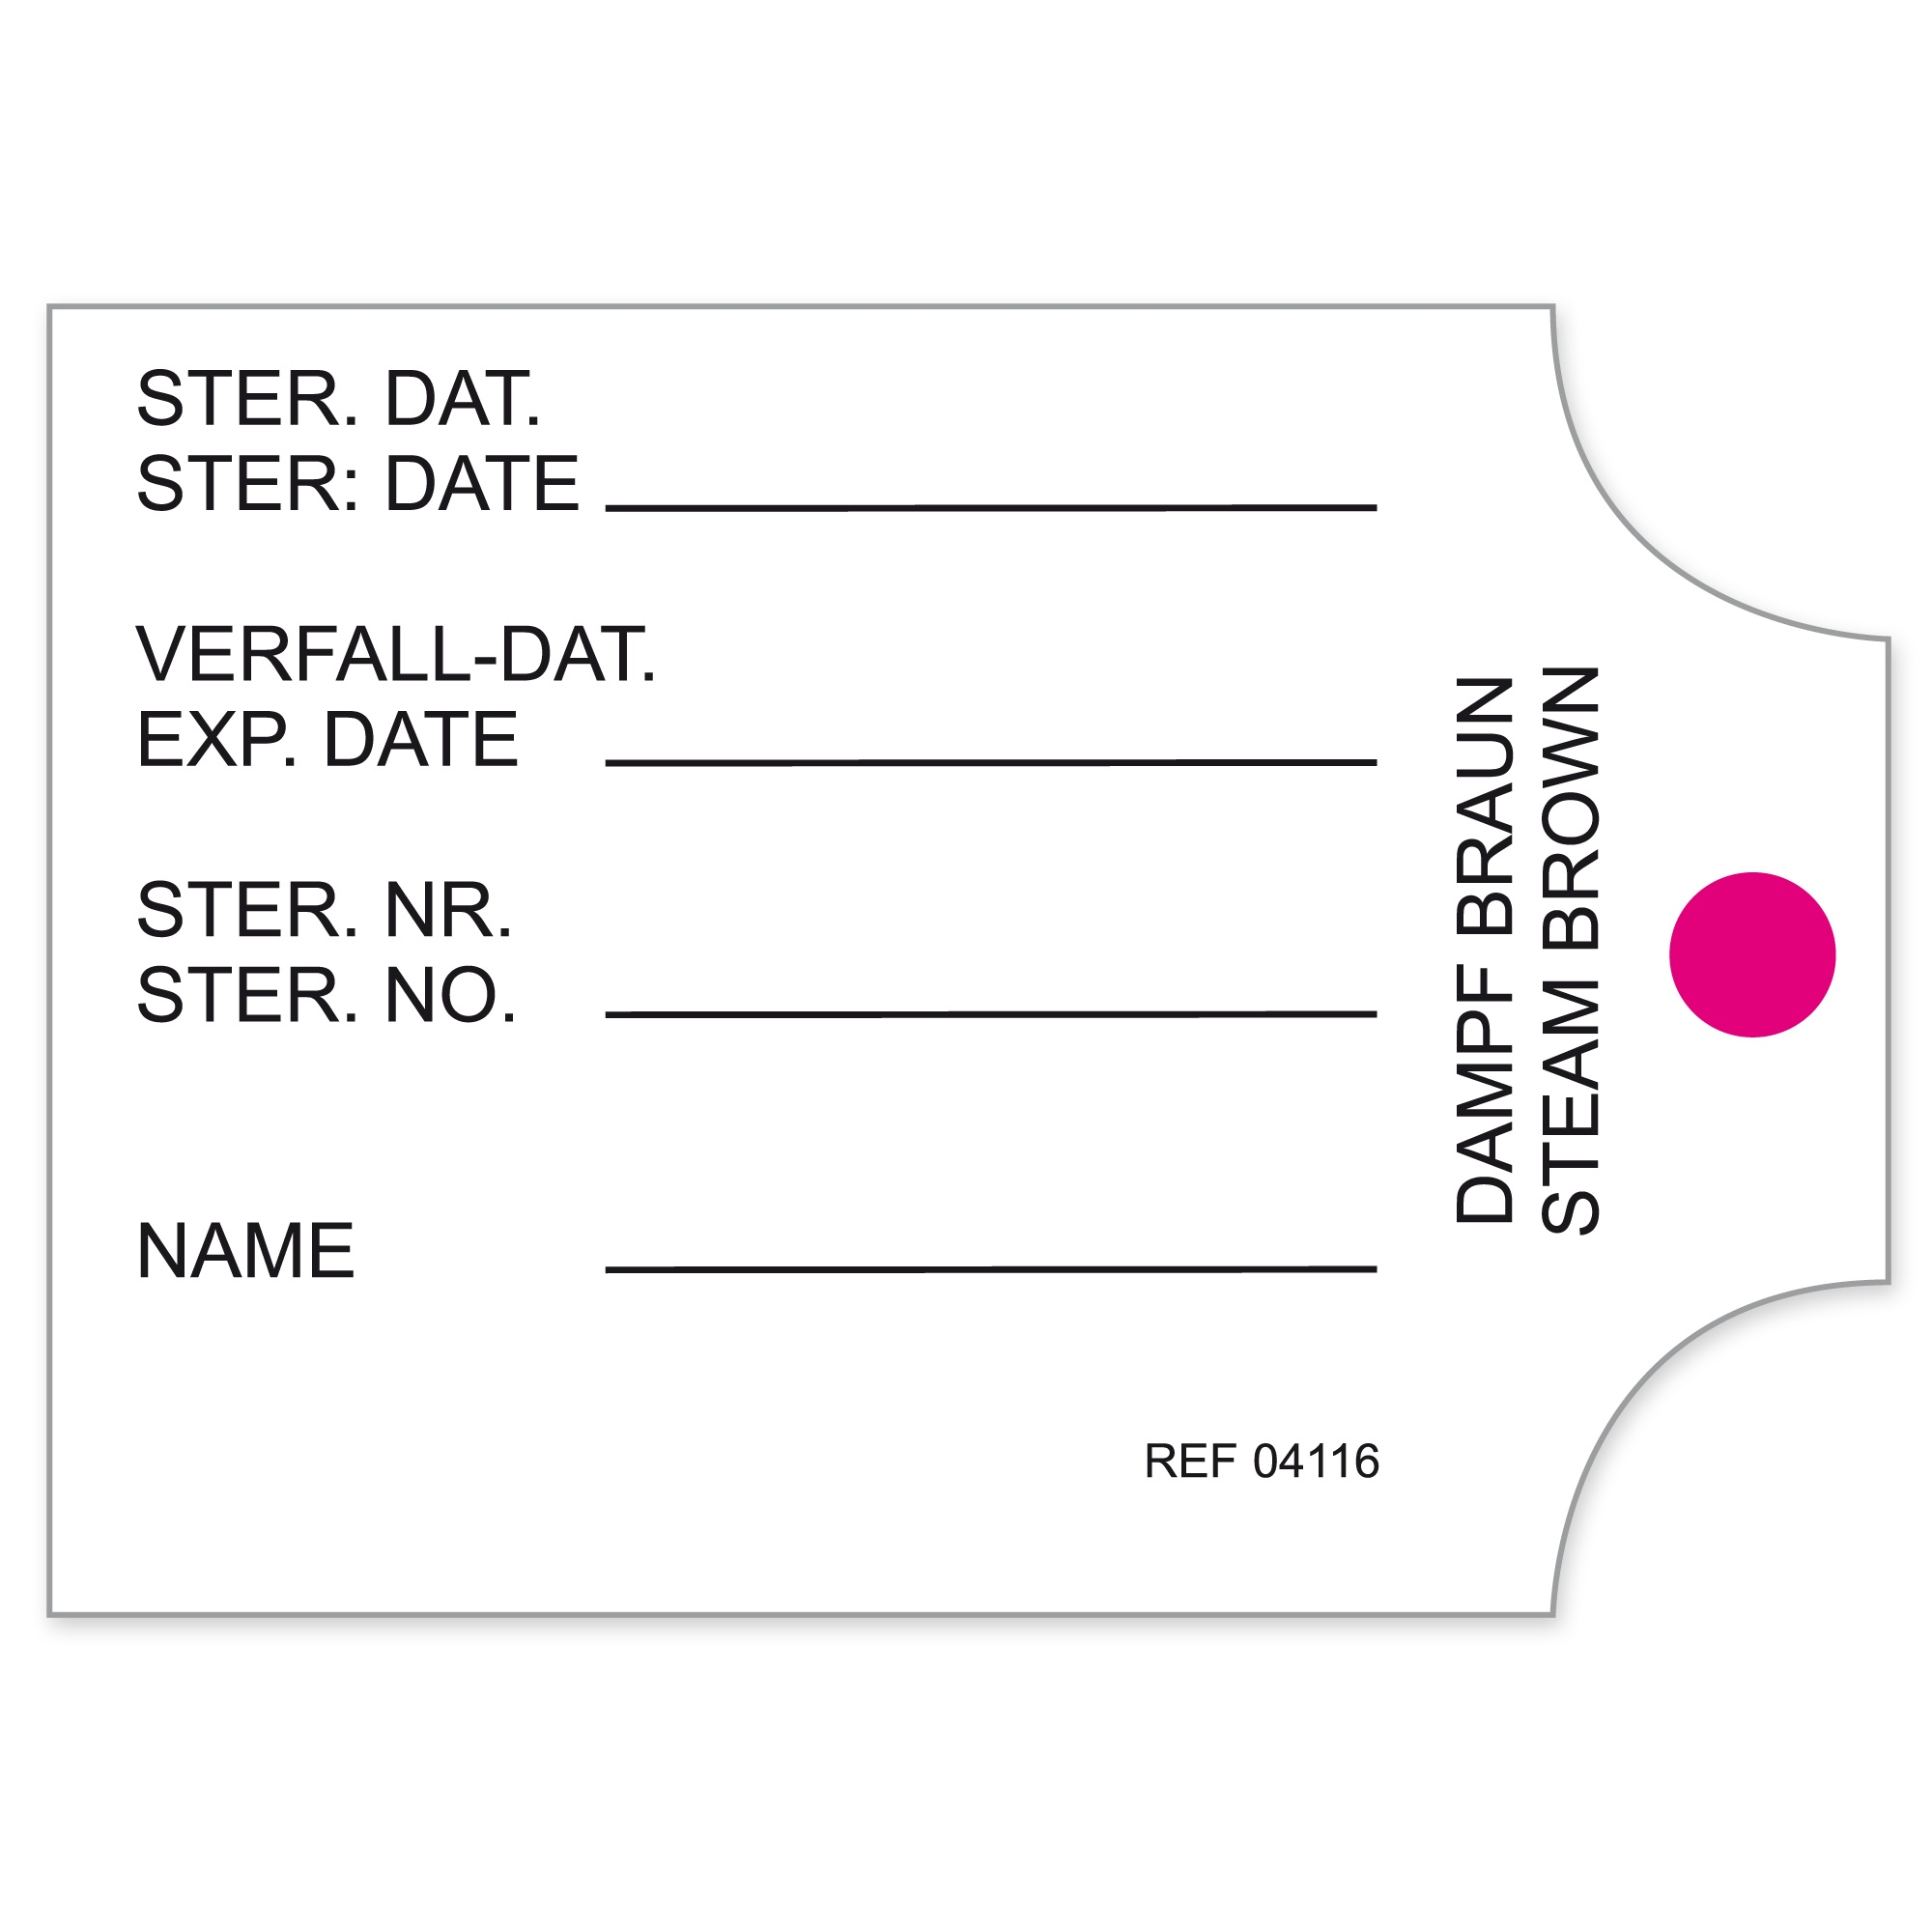 CONTAINER LABELS FOR CBM CONTAINERS Image